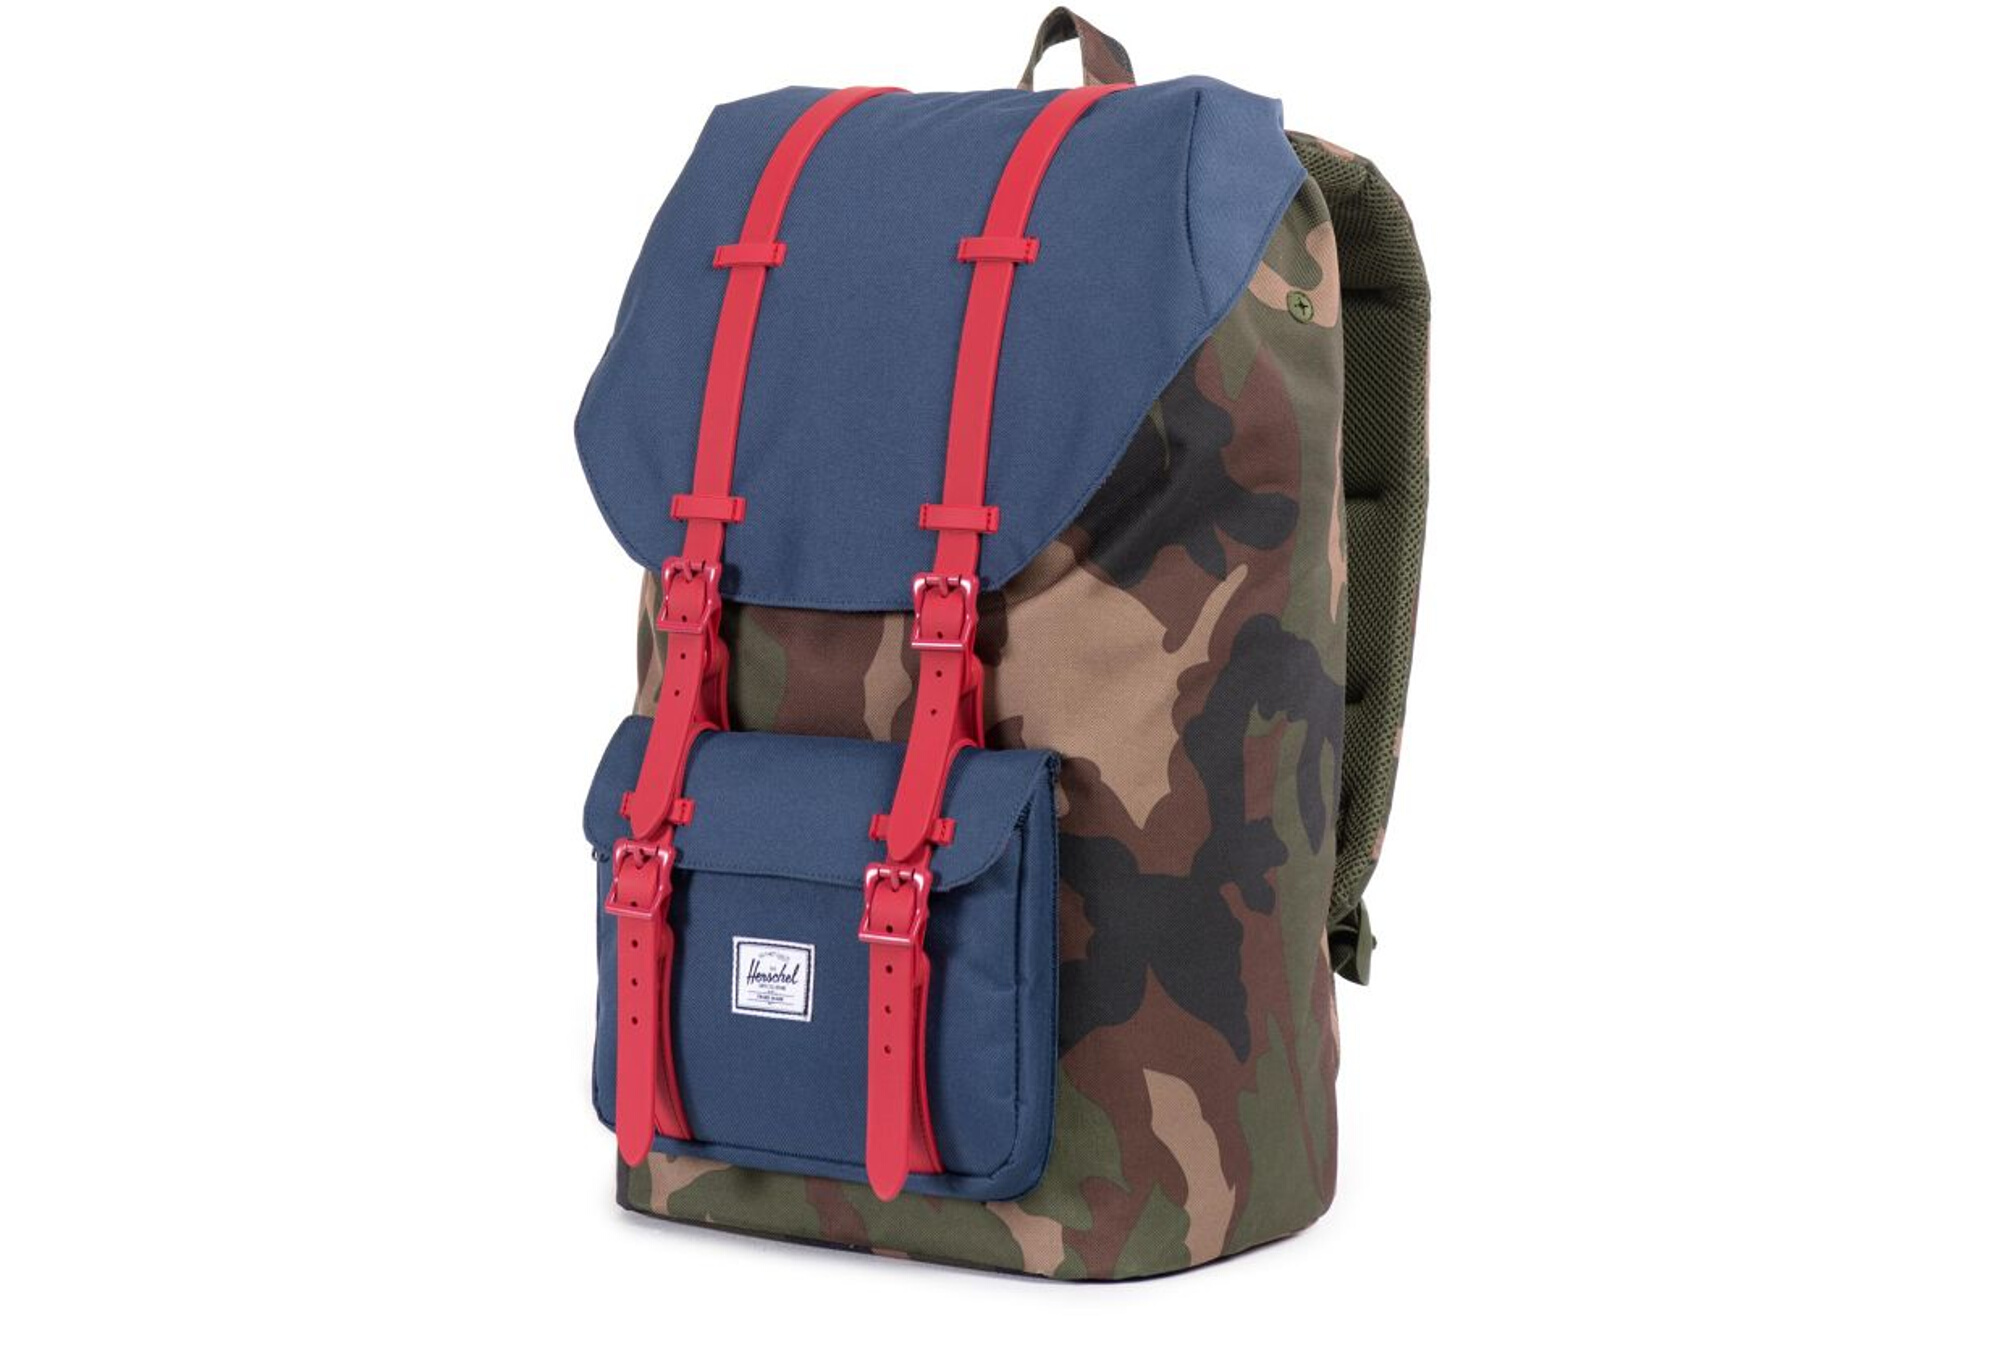 00b7988f51a Sac à Dos HERSCHEL Little America 25L Woodland Camo   Navy   Red Rubber